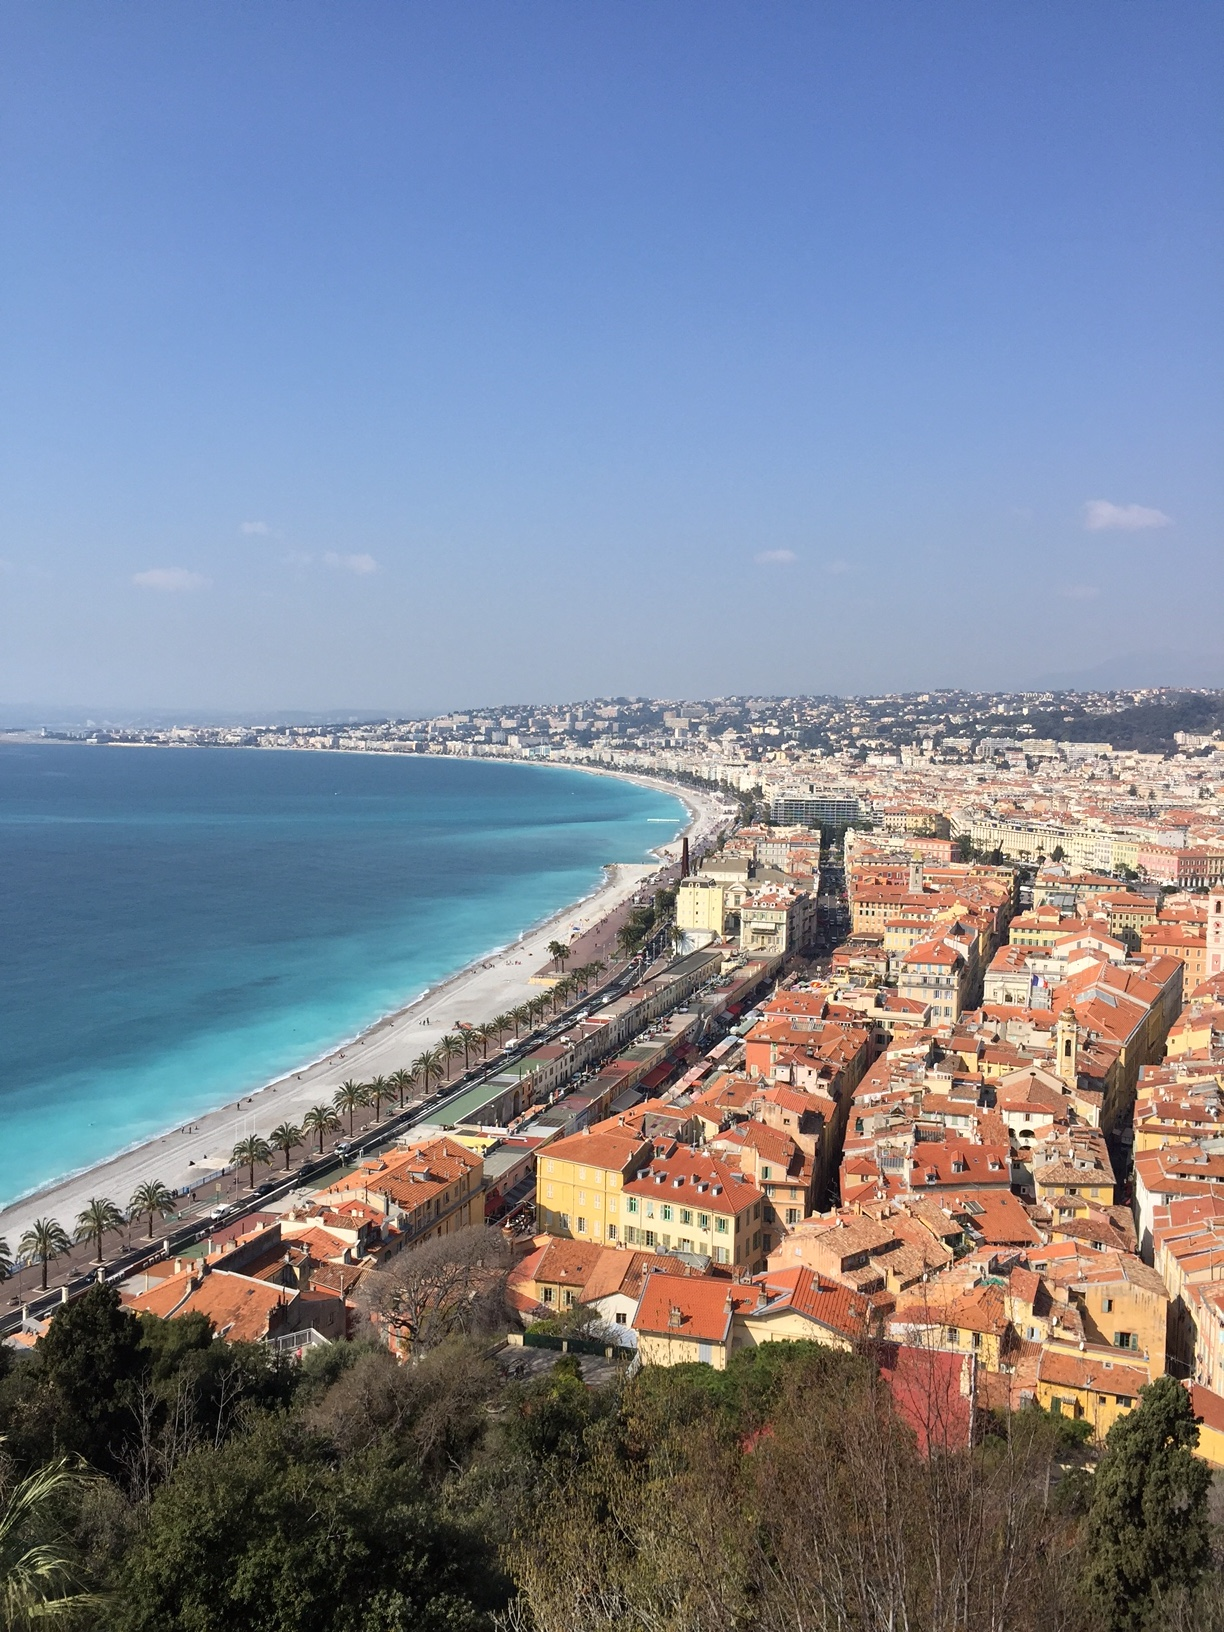 Tour guide Nice Old town nice and promenade des anglais